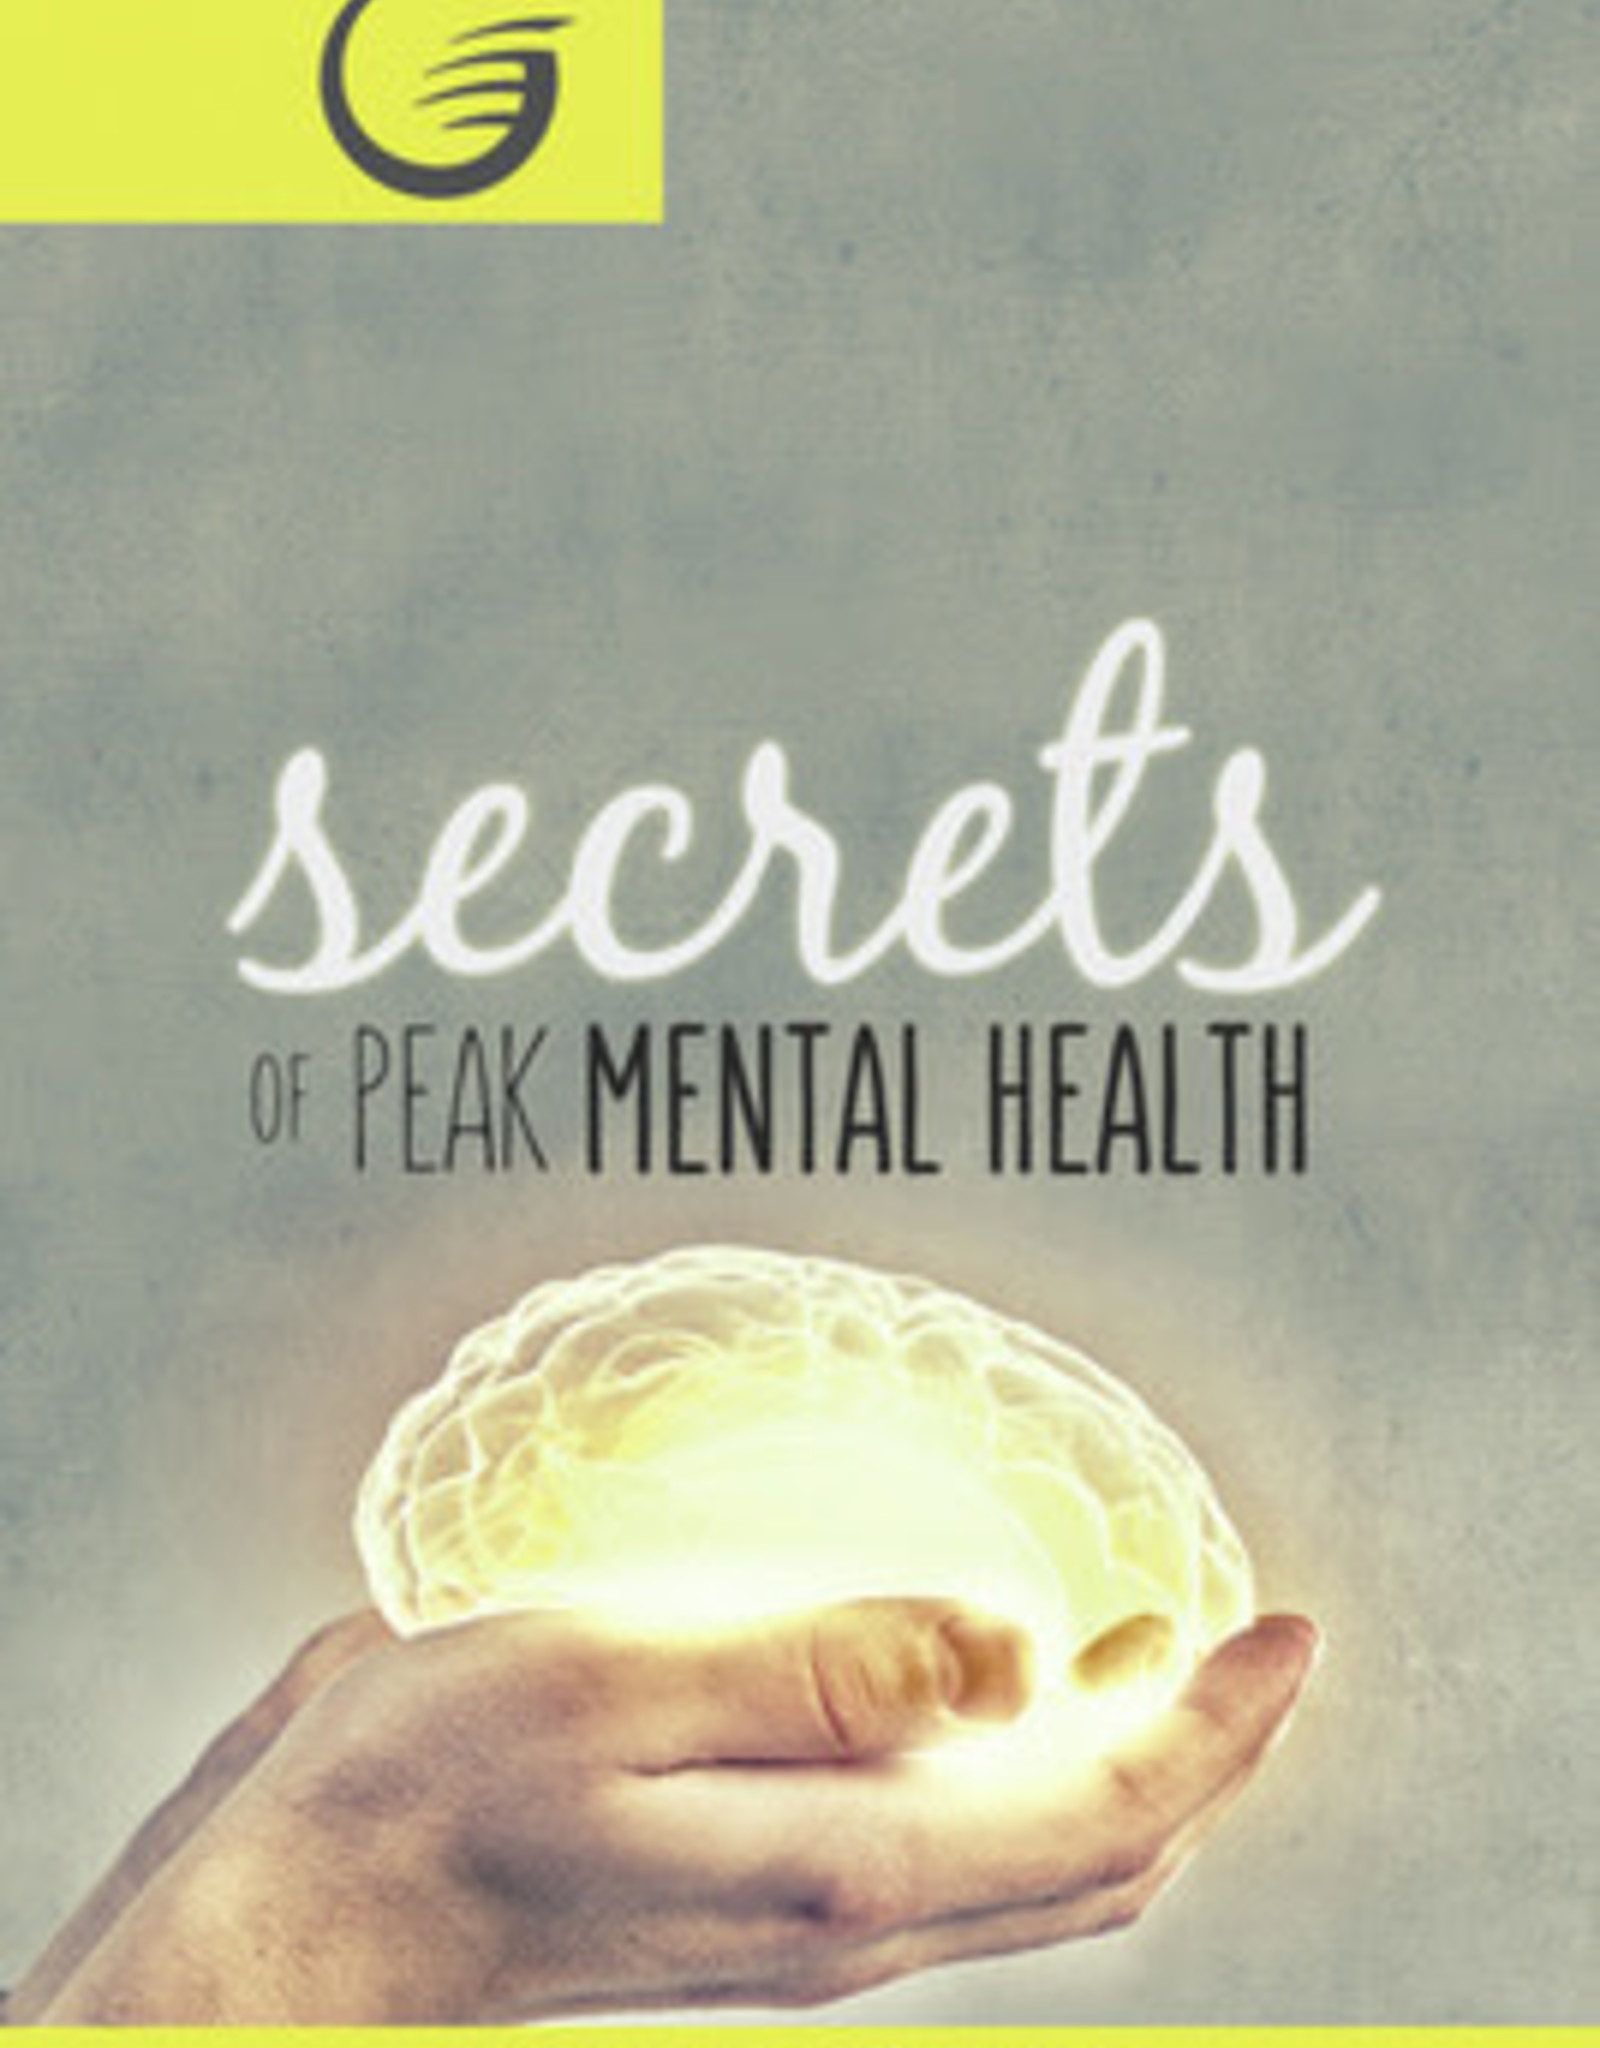 Glow Secrets of Peak Mental Health